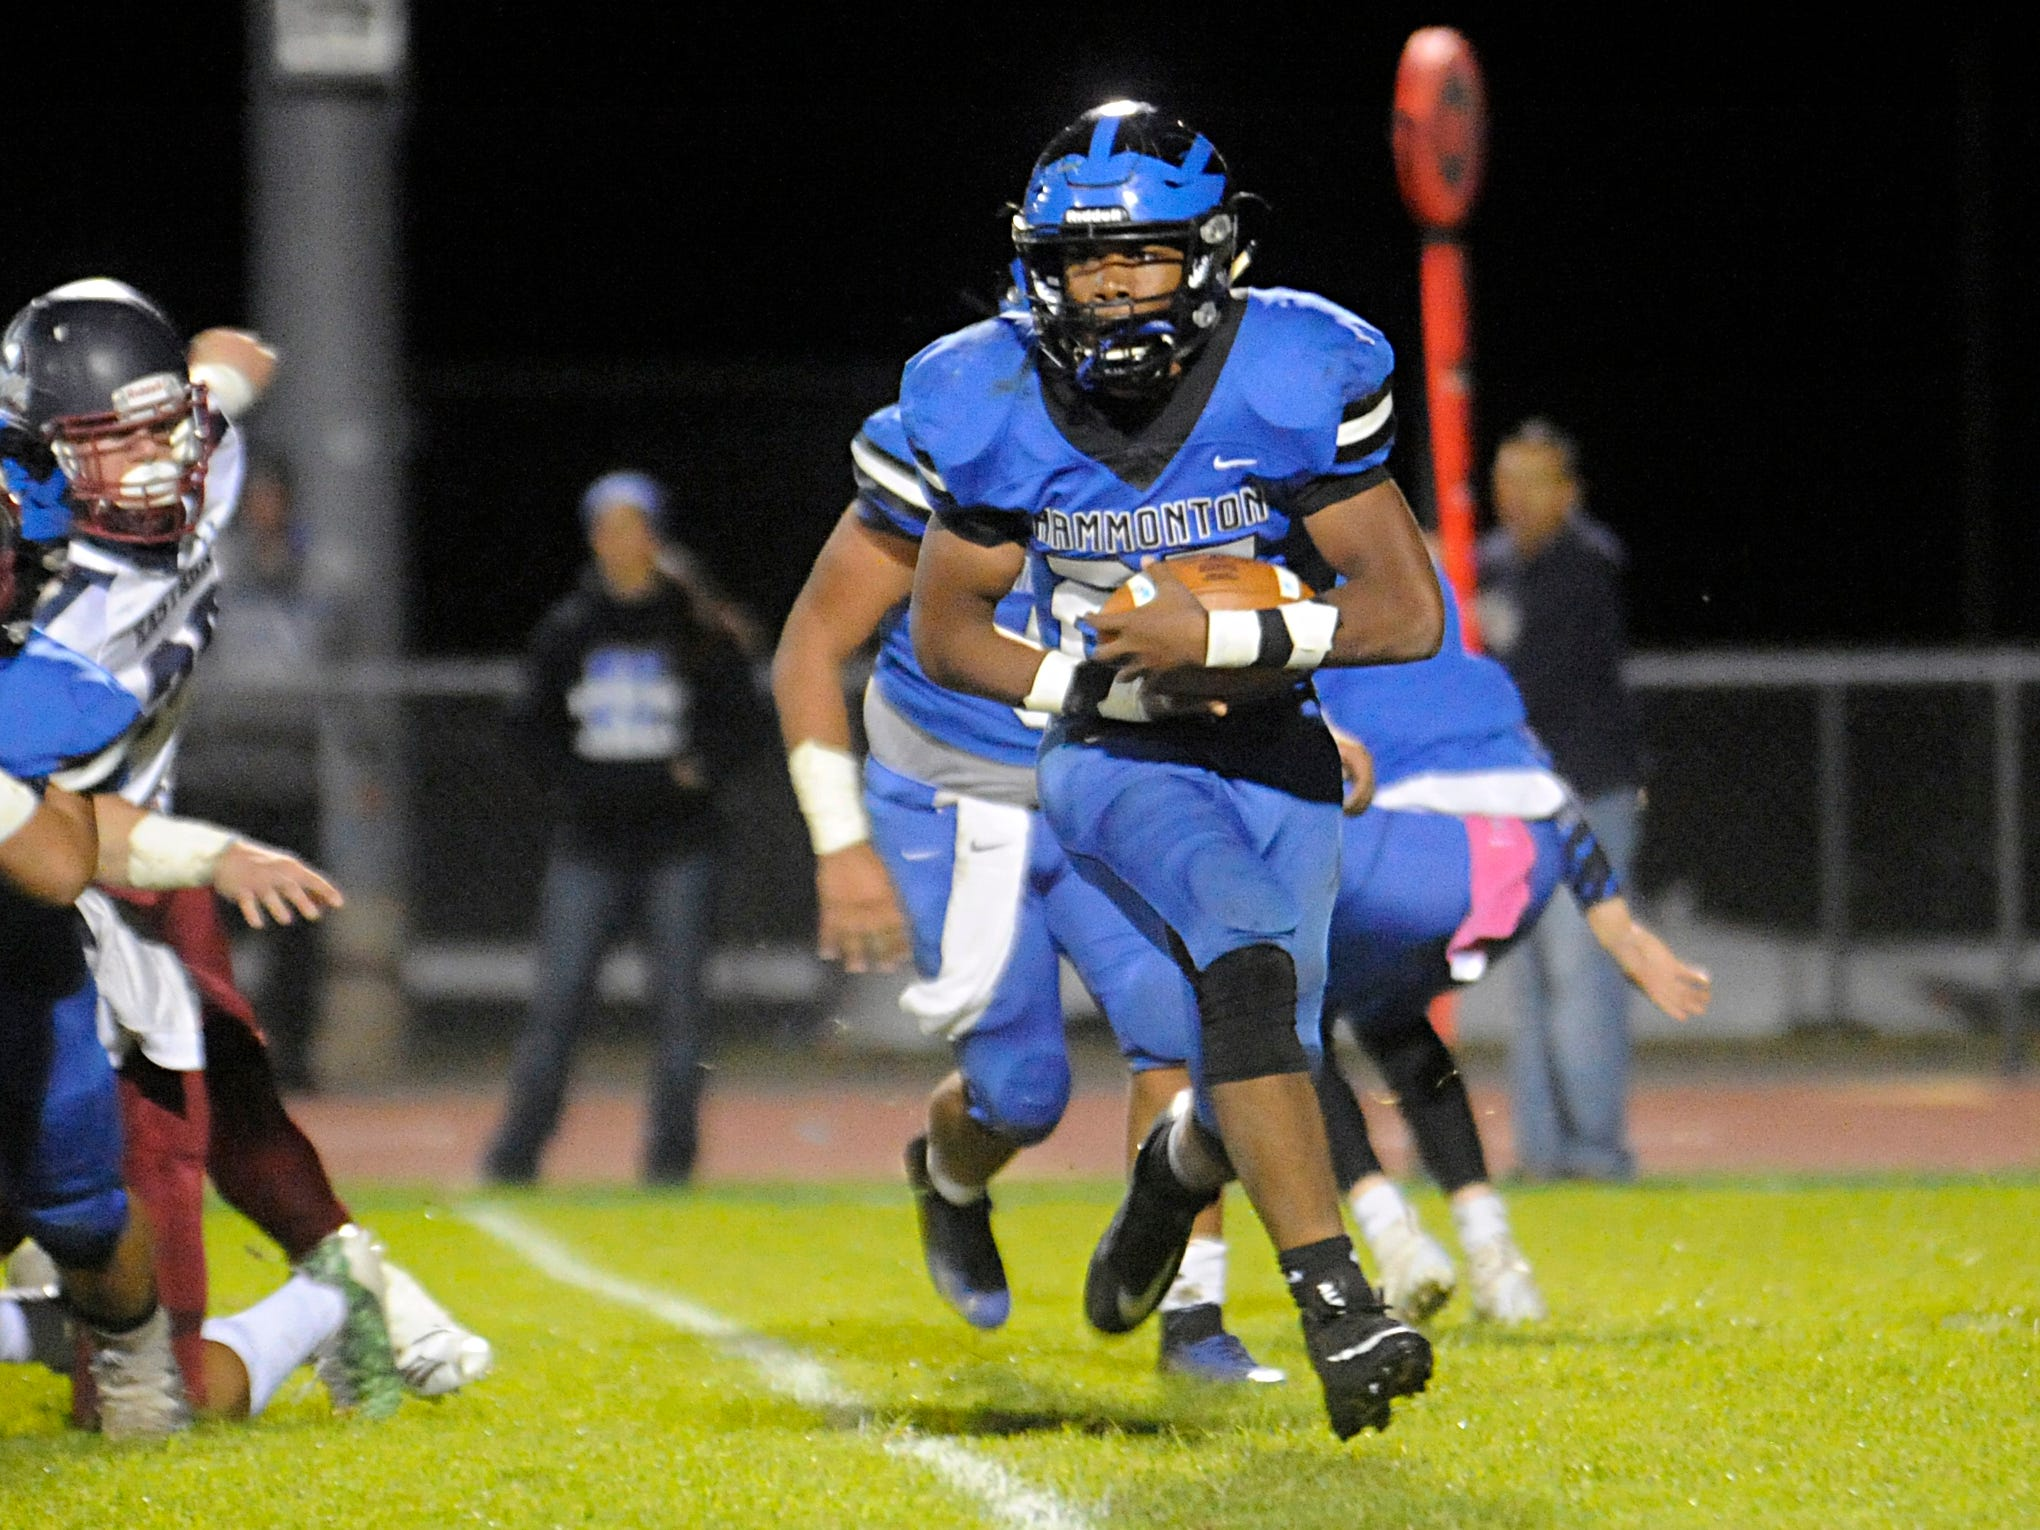 Hammonton's Jaiden Abrams runs for a gain against visiting Eastern. The Vikings topped the Blue Devils, 13-12, on Friday, October 19, 2018.